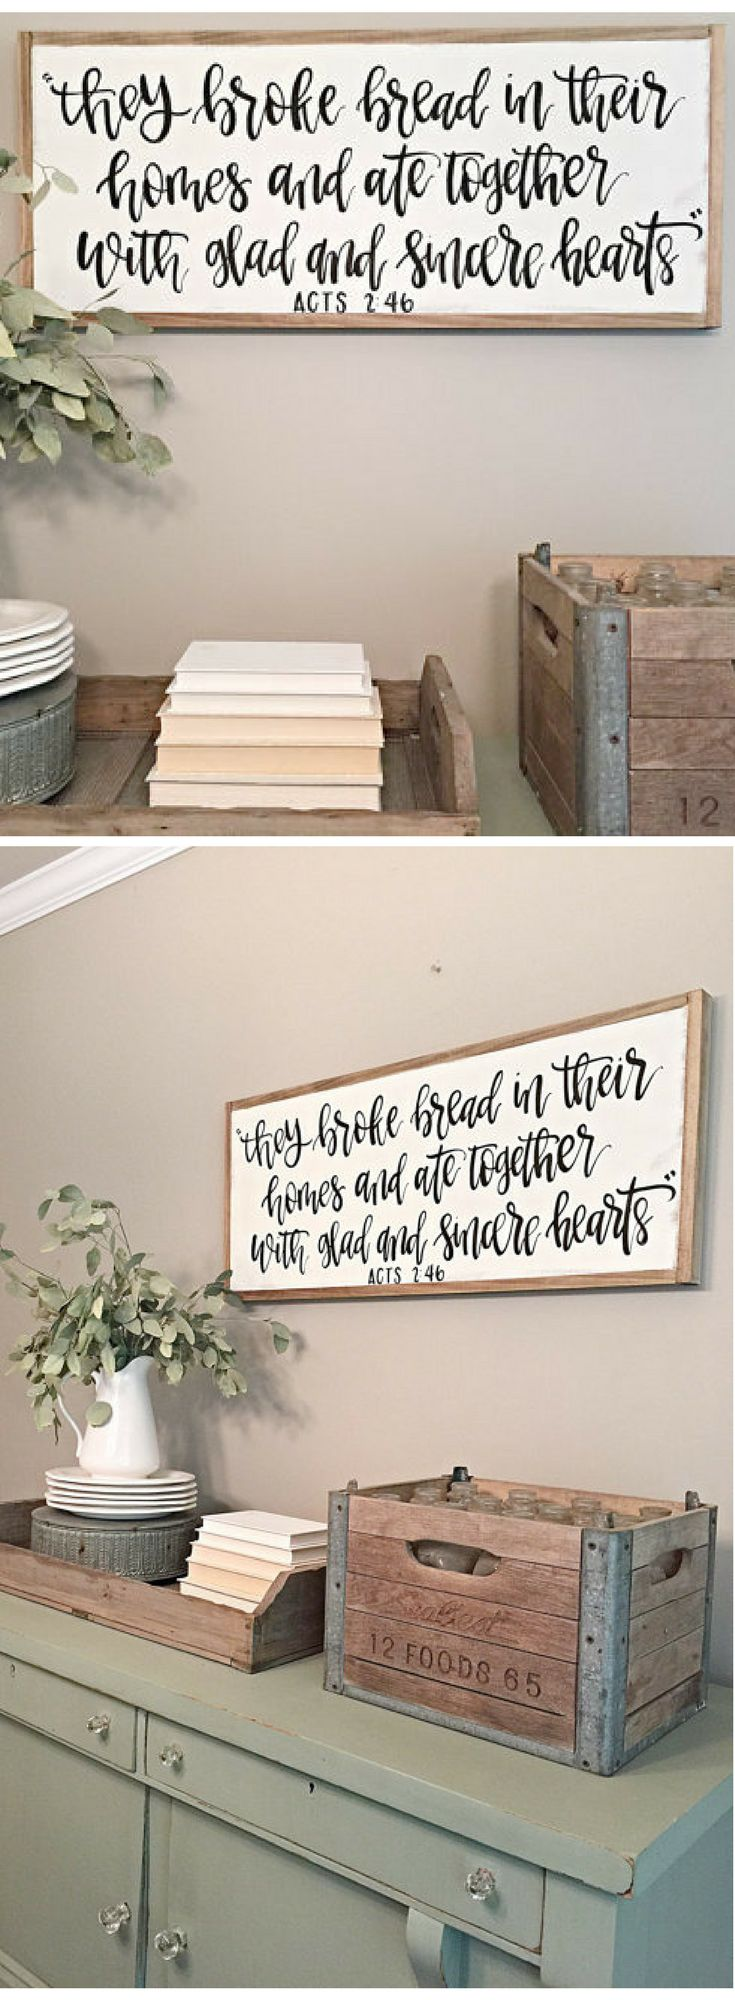 They Broke Bread in Their Homes and ate Together with Glad and Sincere Hearts Sign | Acts 2:46 | Scripture Sign | Kitchen Decor | Farmhouse Style Sign | Reclaimed Wood Sign | Dining Room sign | Farmhouse decor | Rustic Decor | Rustic sign #ad